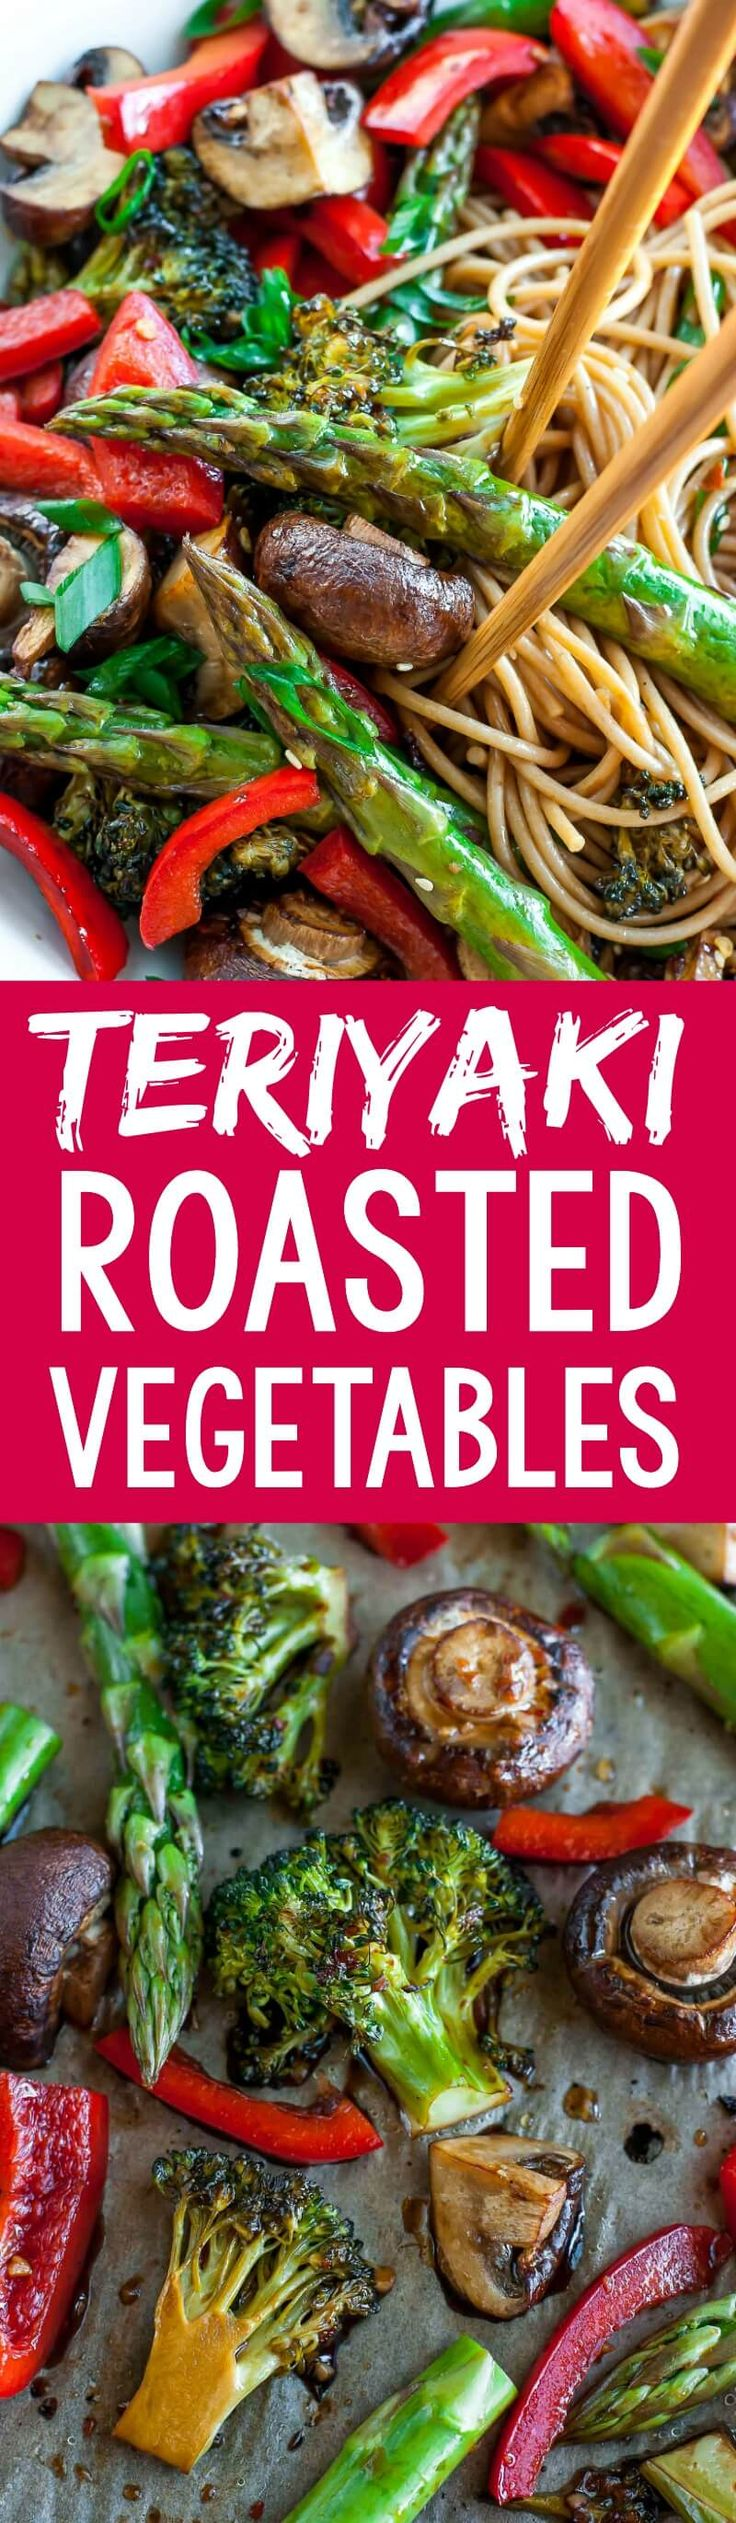 Grab a sheet pan and whip up these Easy Teriyaki Roasted Vegetables for a quick + tasty side dish! This one pan recipe pairs great with noodles, rice, tofu, or shrimp.